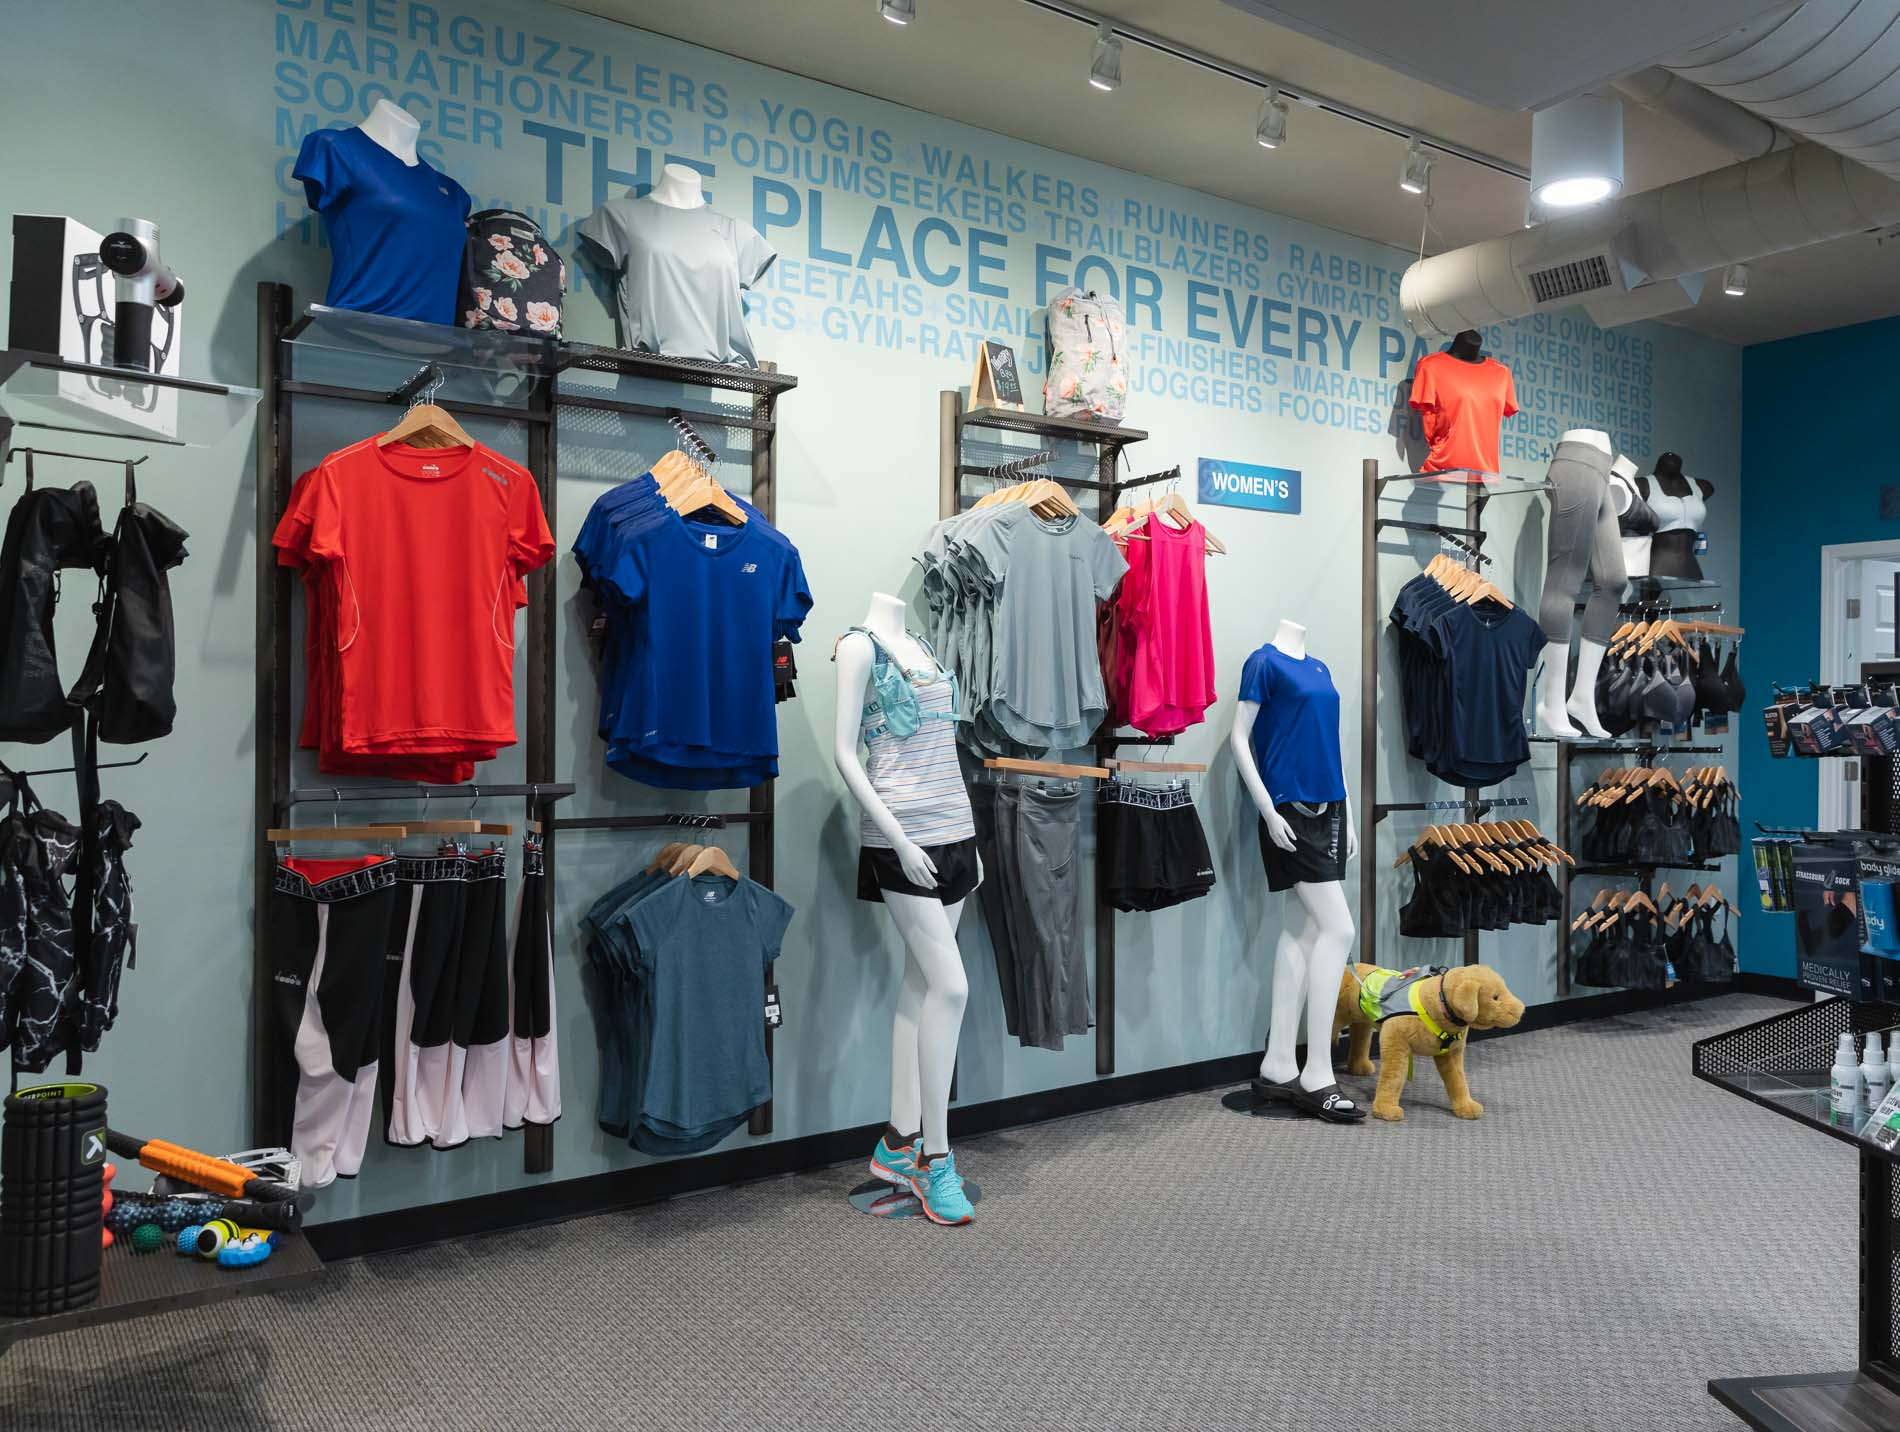 interior photo of the running well store in kansas city featuring men's and women's workout clothes